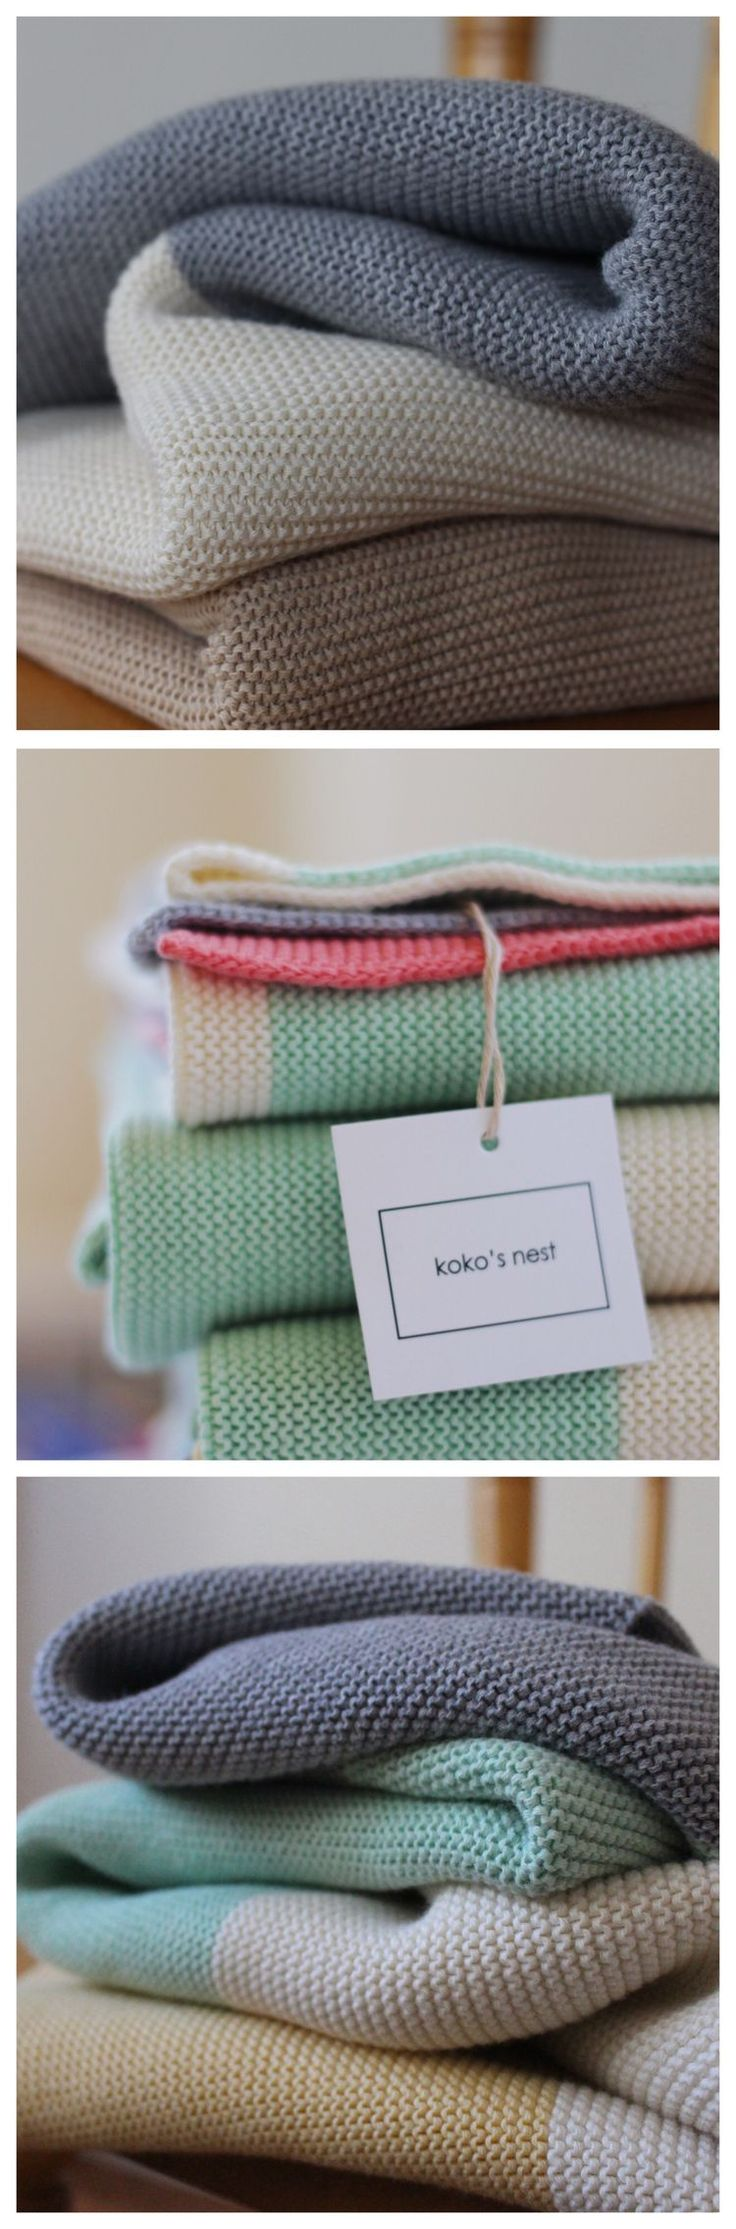 Supersoft Cotton Baby Blankets | for the modern nesting family ~ kokosnest.com More